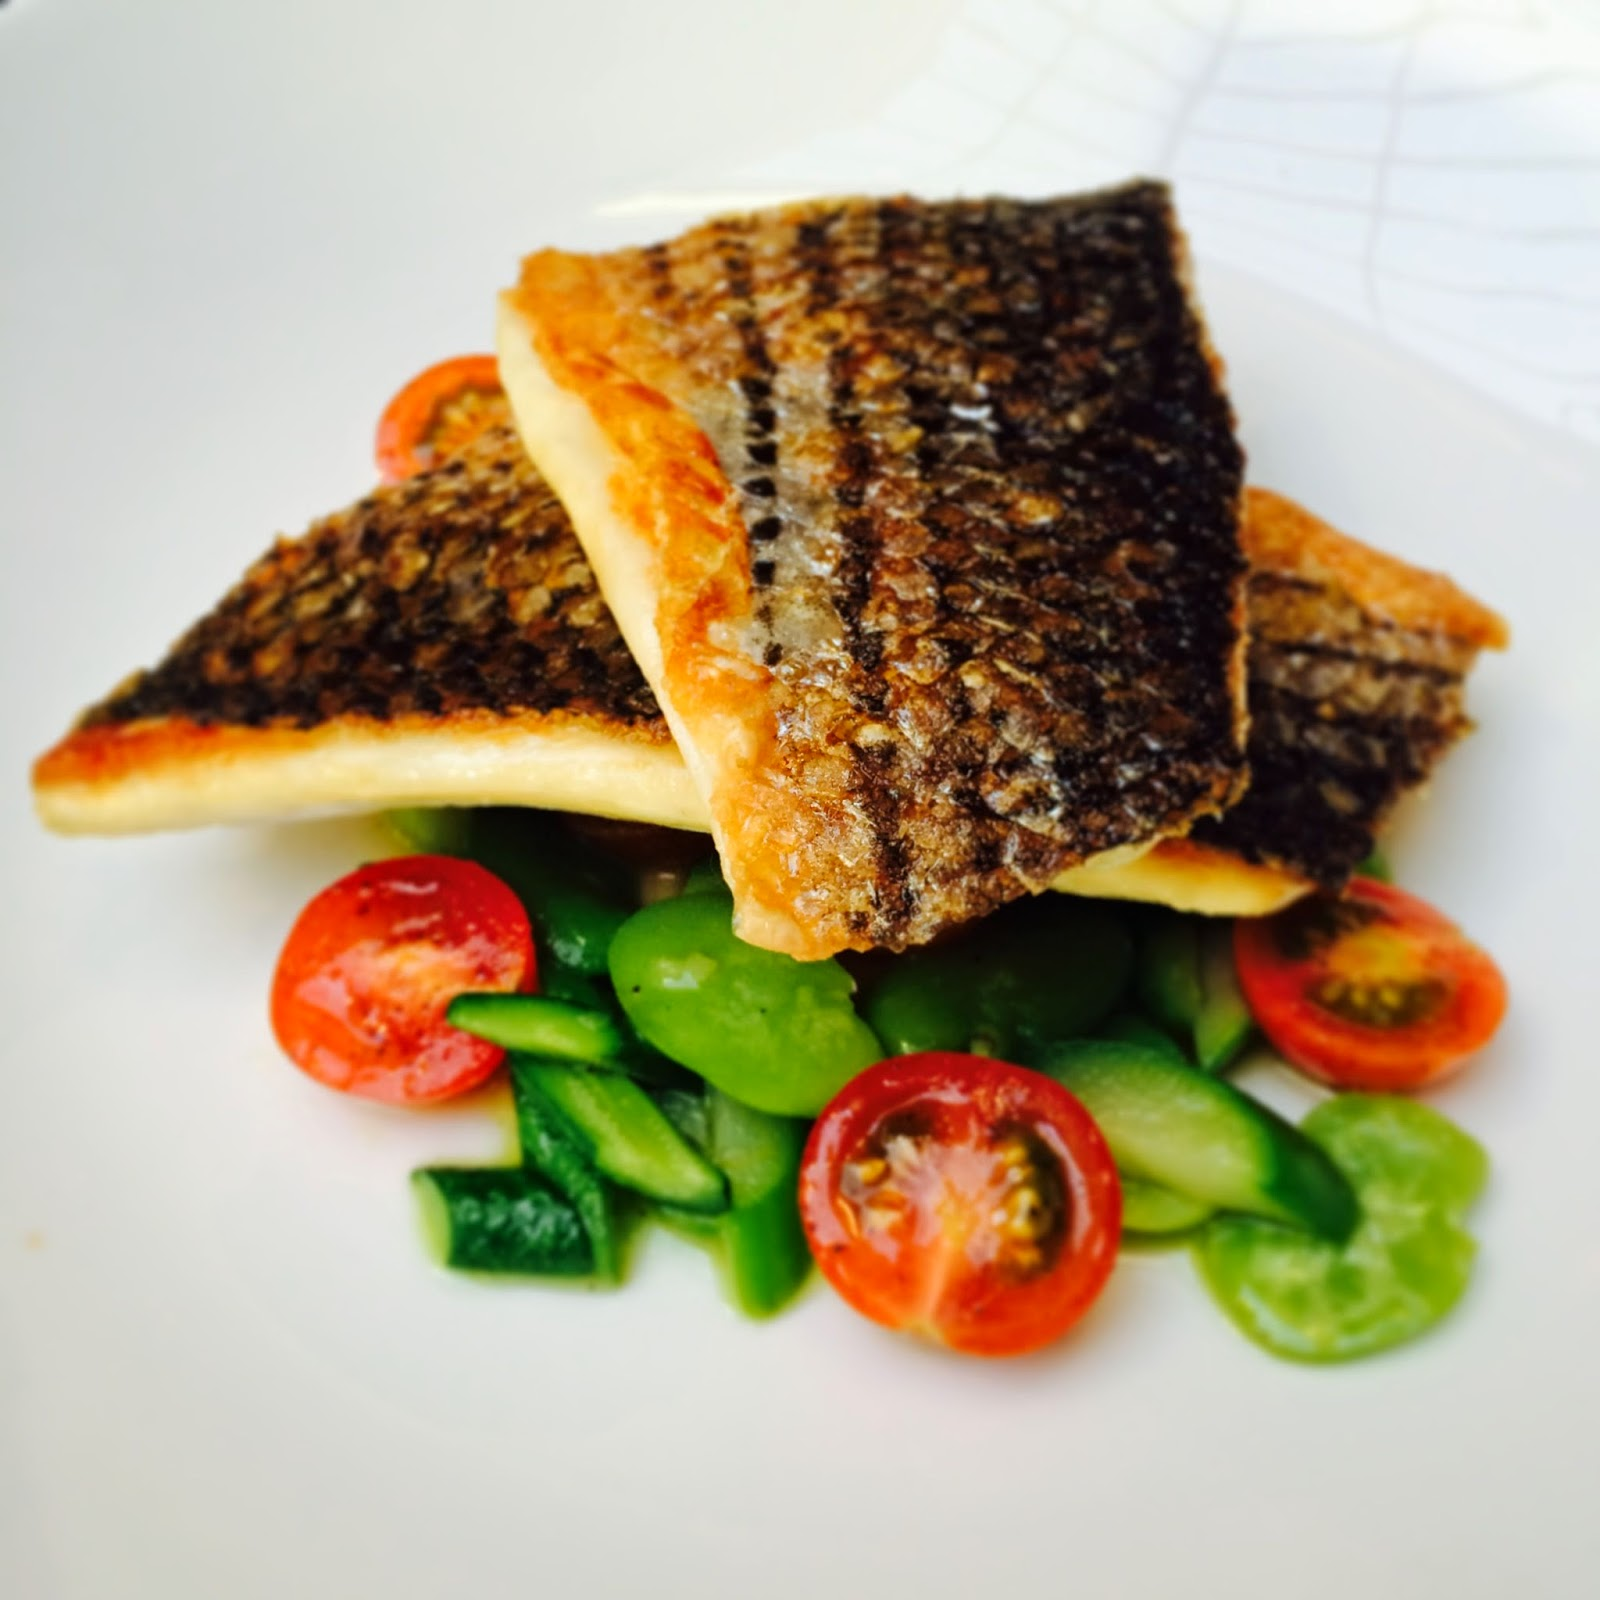 Gluten-free, dairy-free Branzino at Republique Restaurant in LA